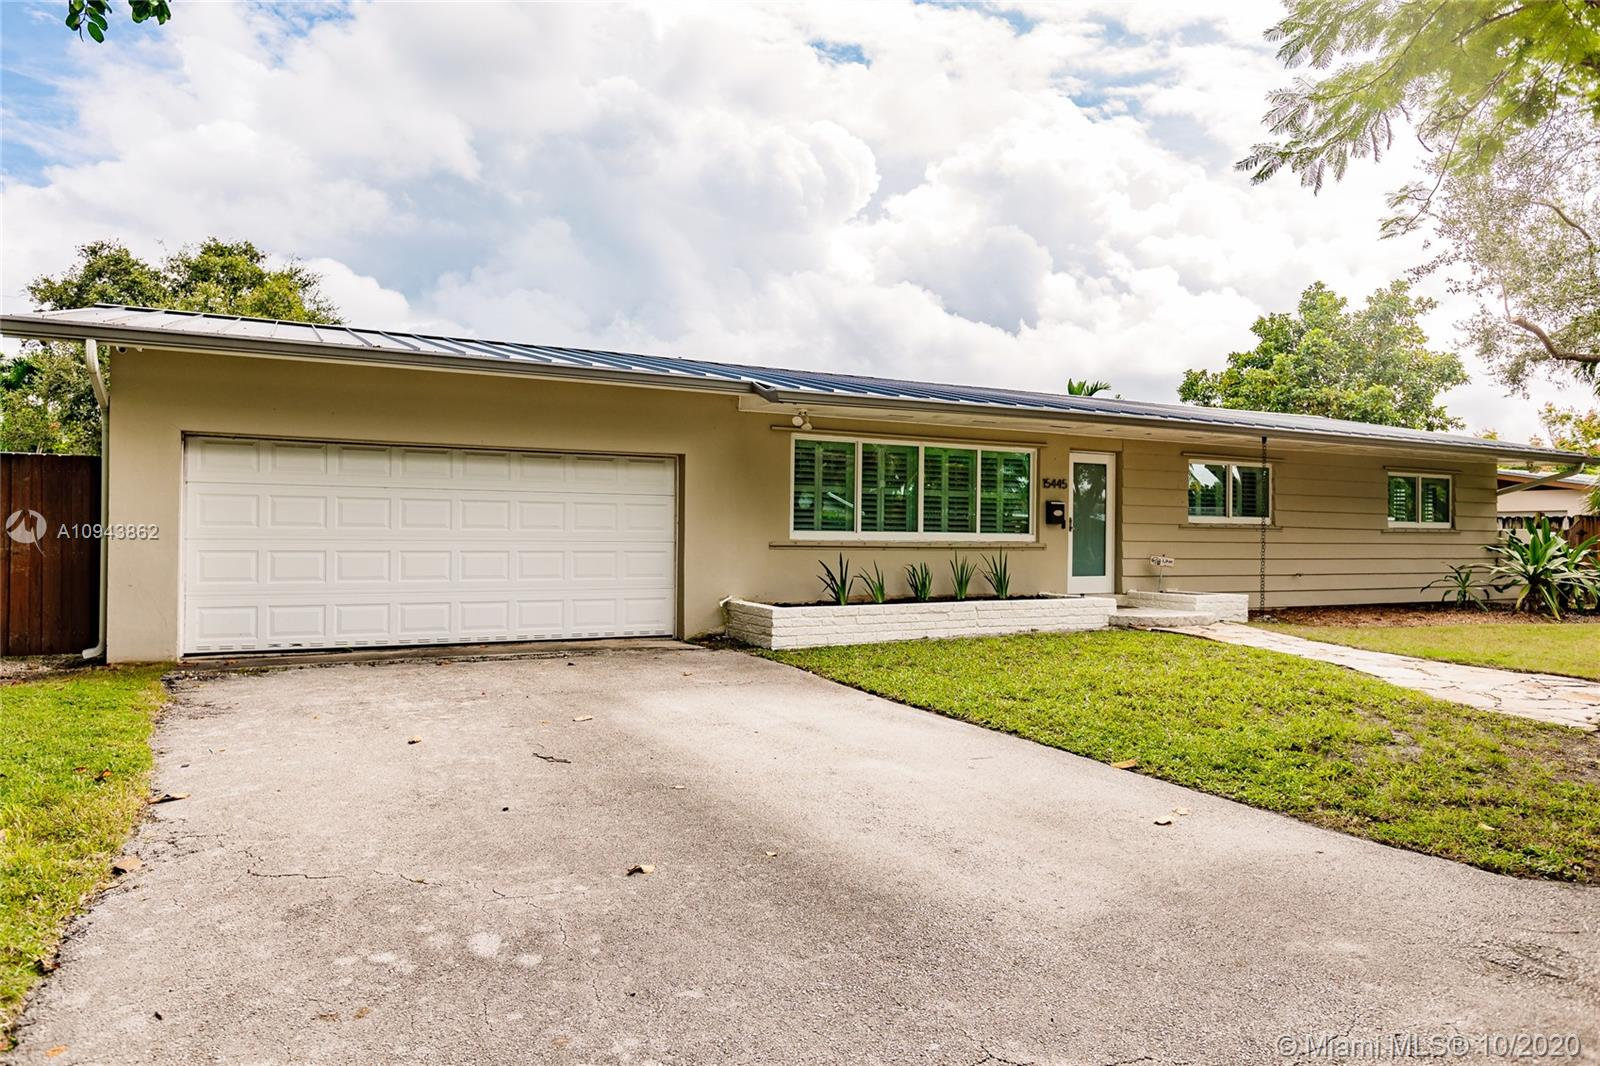 15445 SW 88th Ave, Palmetto Bay, Florida 33157, 3 Bedrooms Bedrooms, ,2 BathroomsBathrooms,Residential,For Sale,15445 SW 88th Ave,A10943862